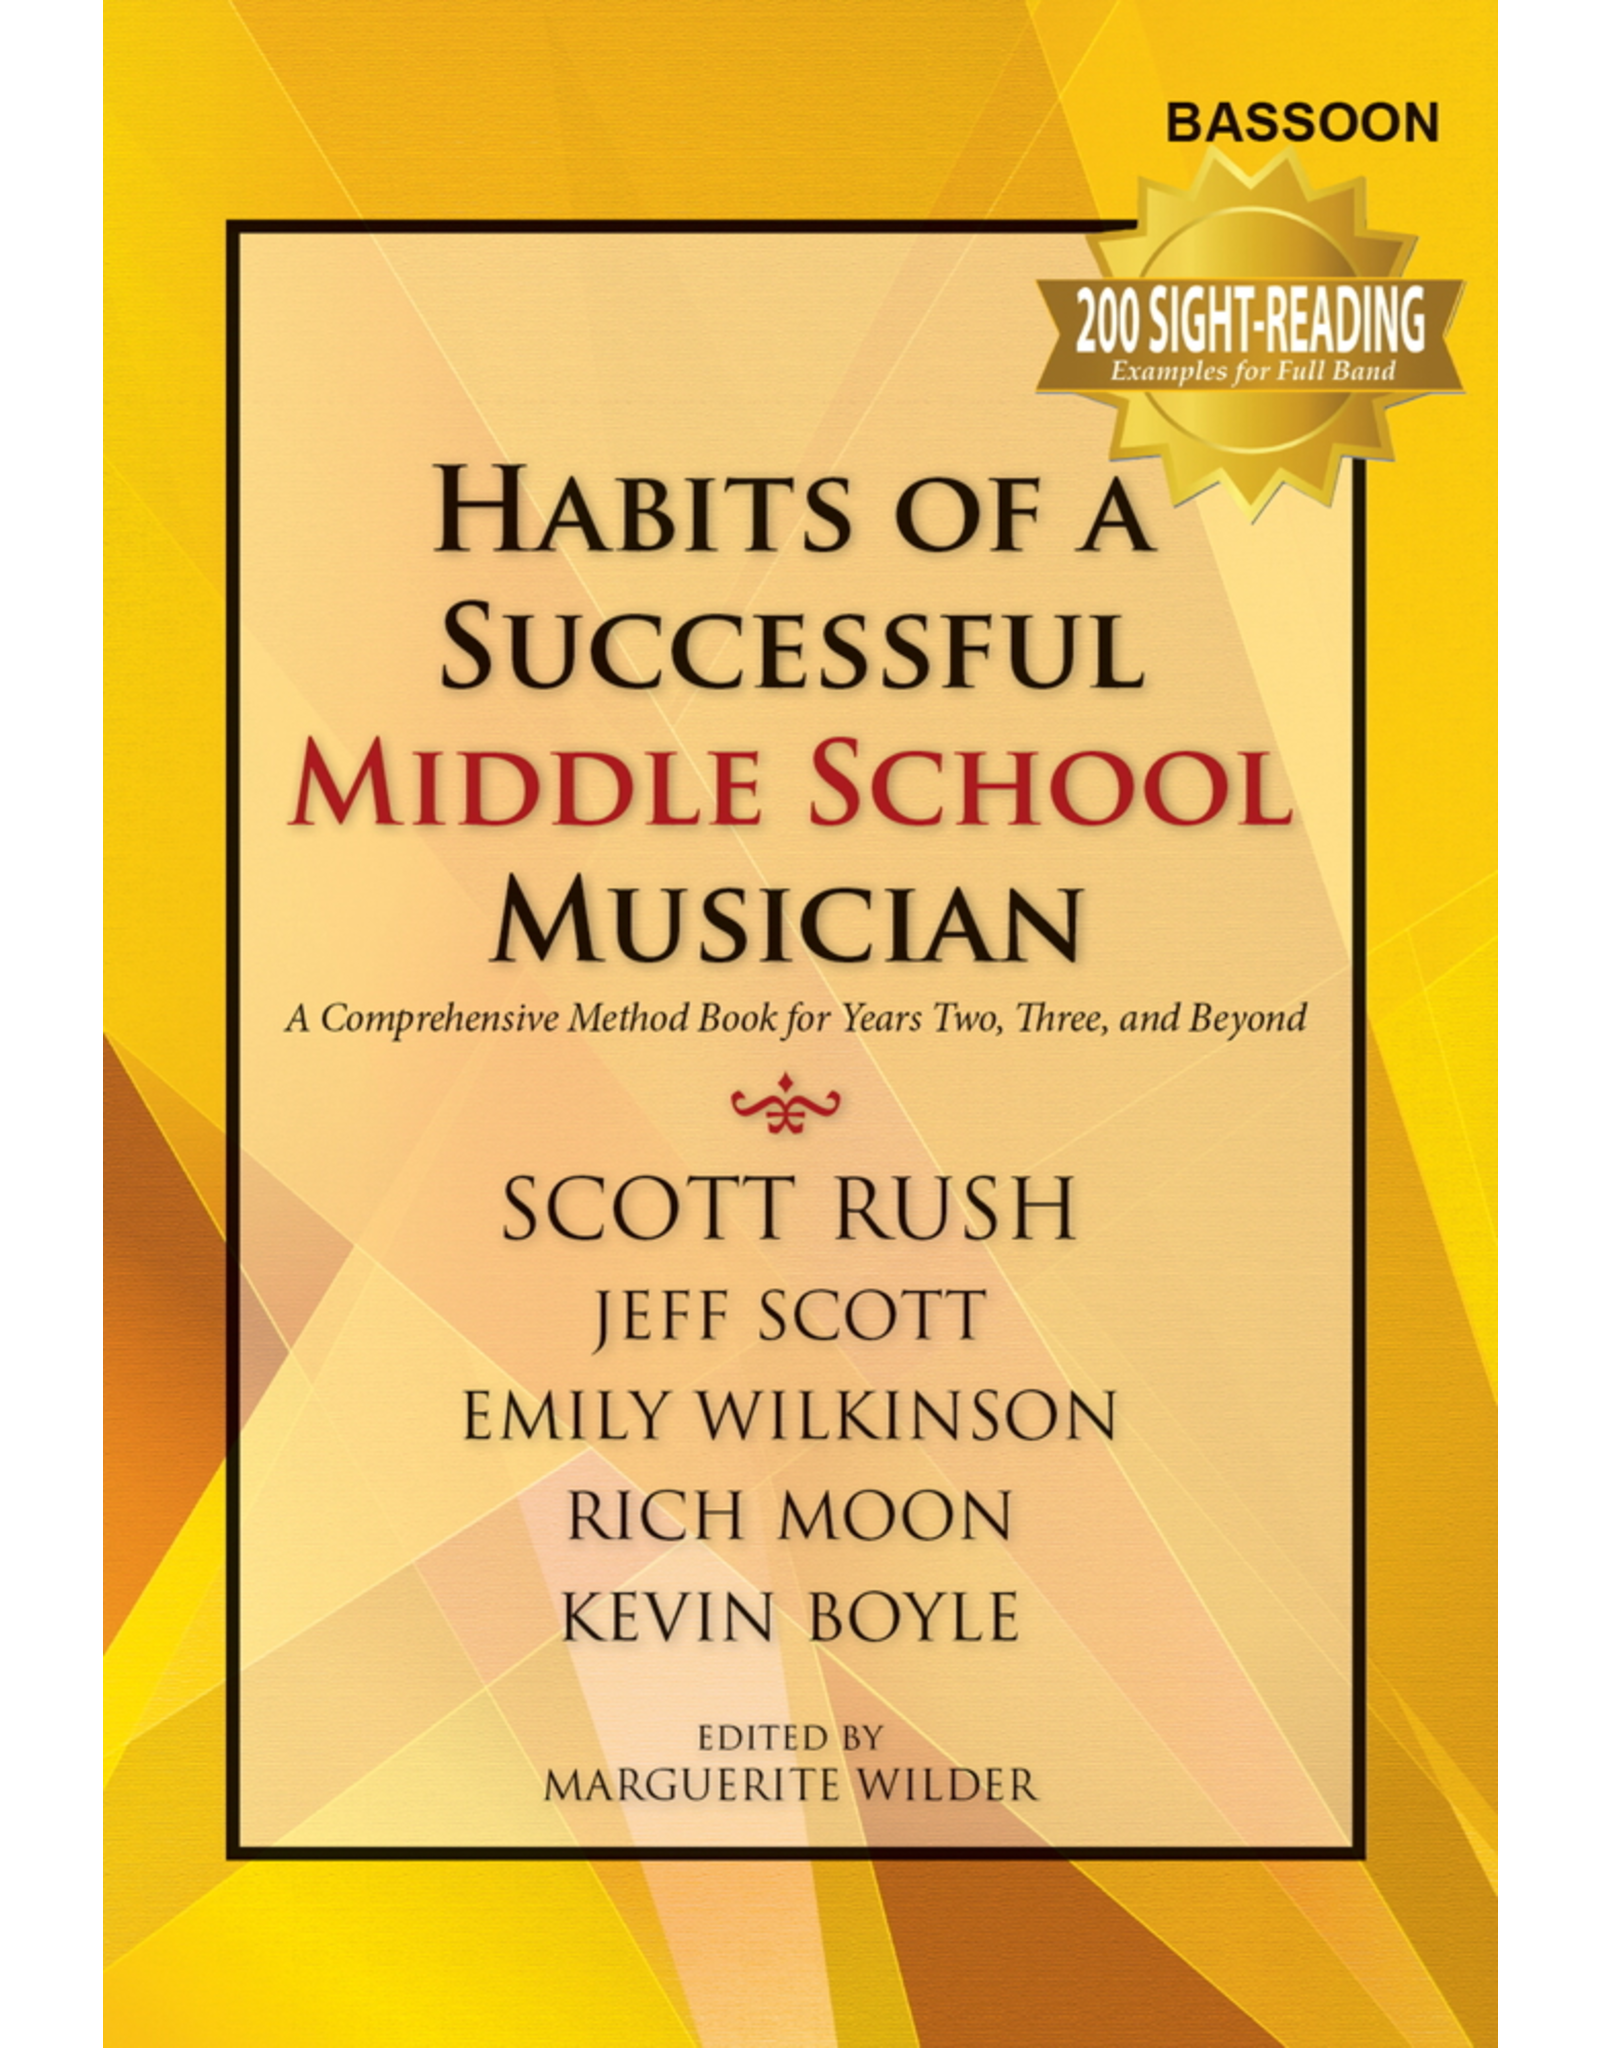 GIA Publications Habits of a Successful Middle School Musician - Bassoon